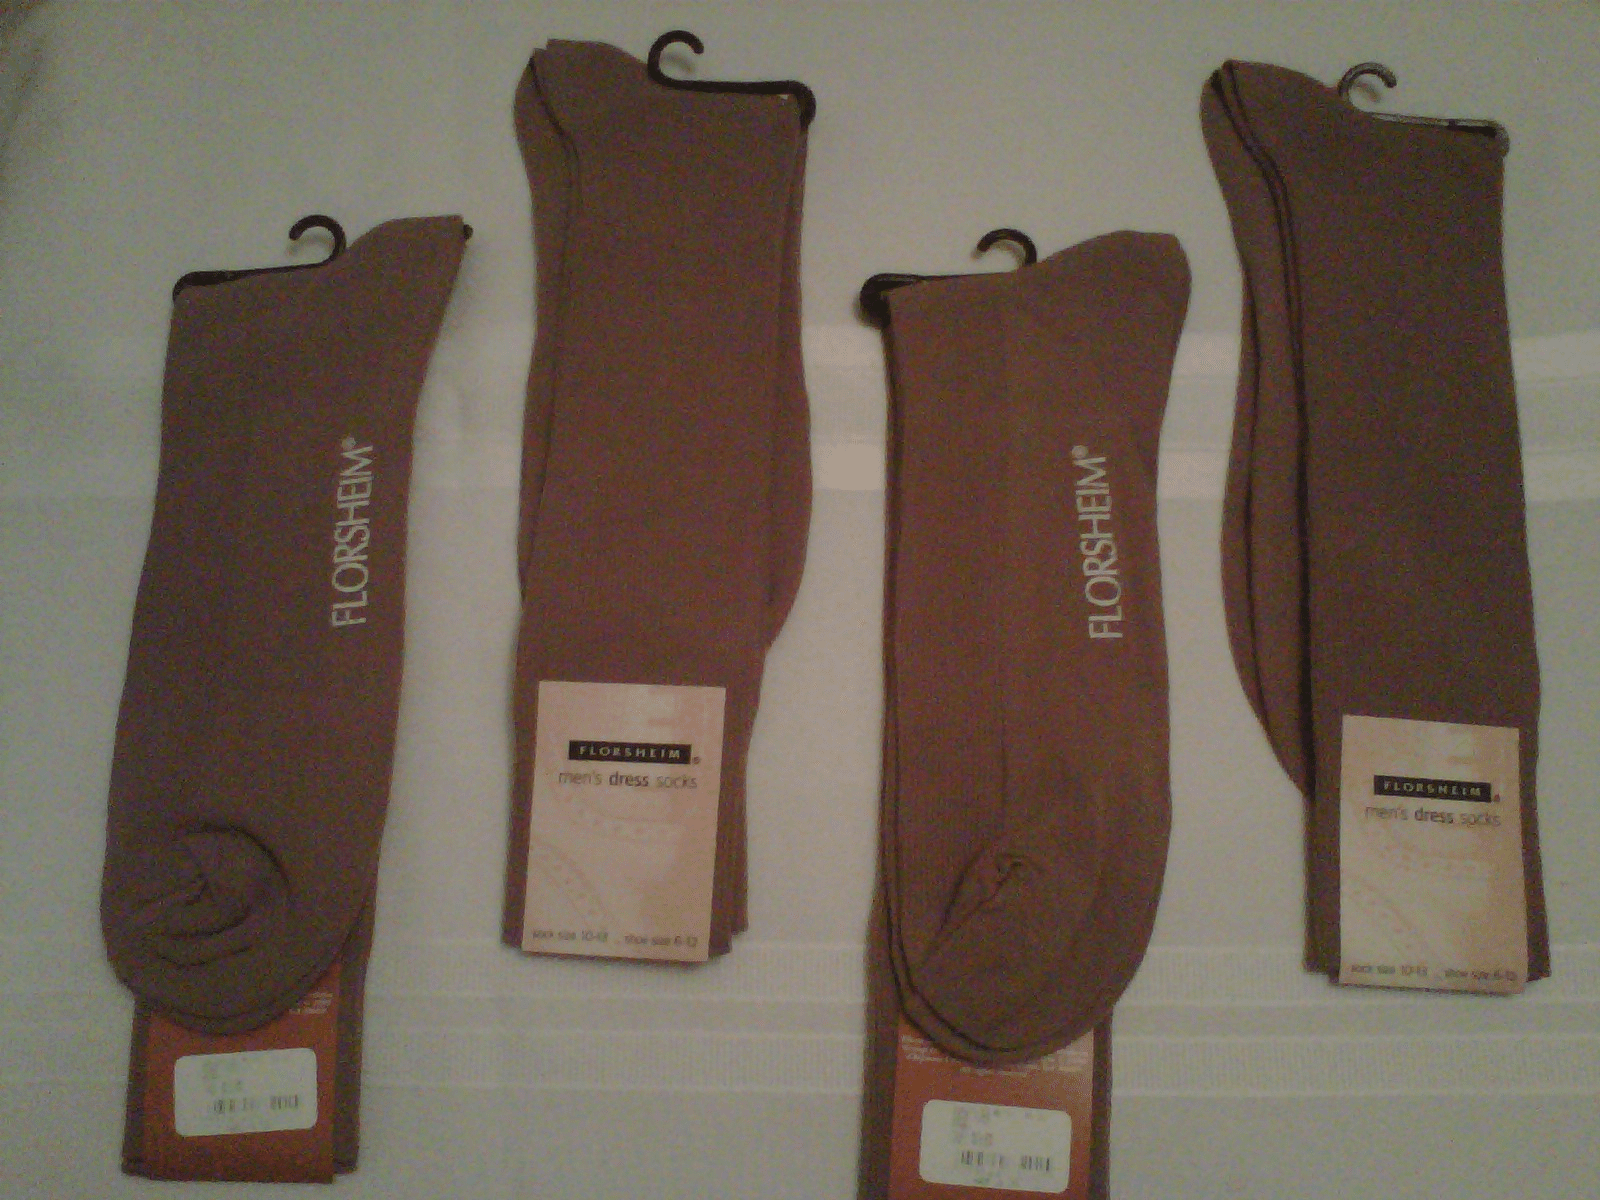 Florsheim Men's Dress Socks